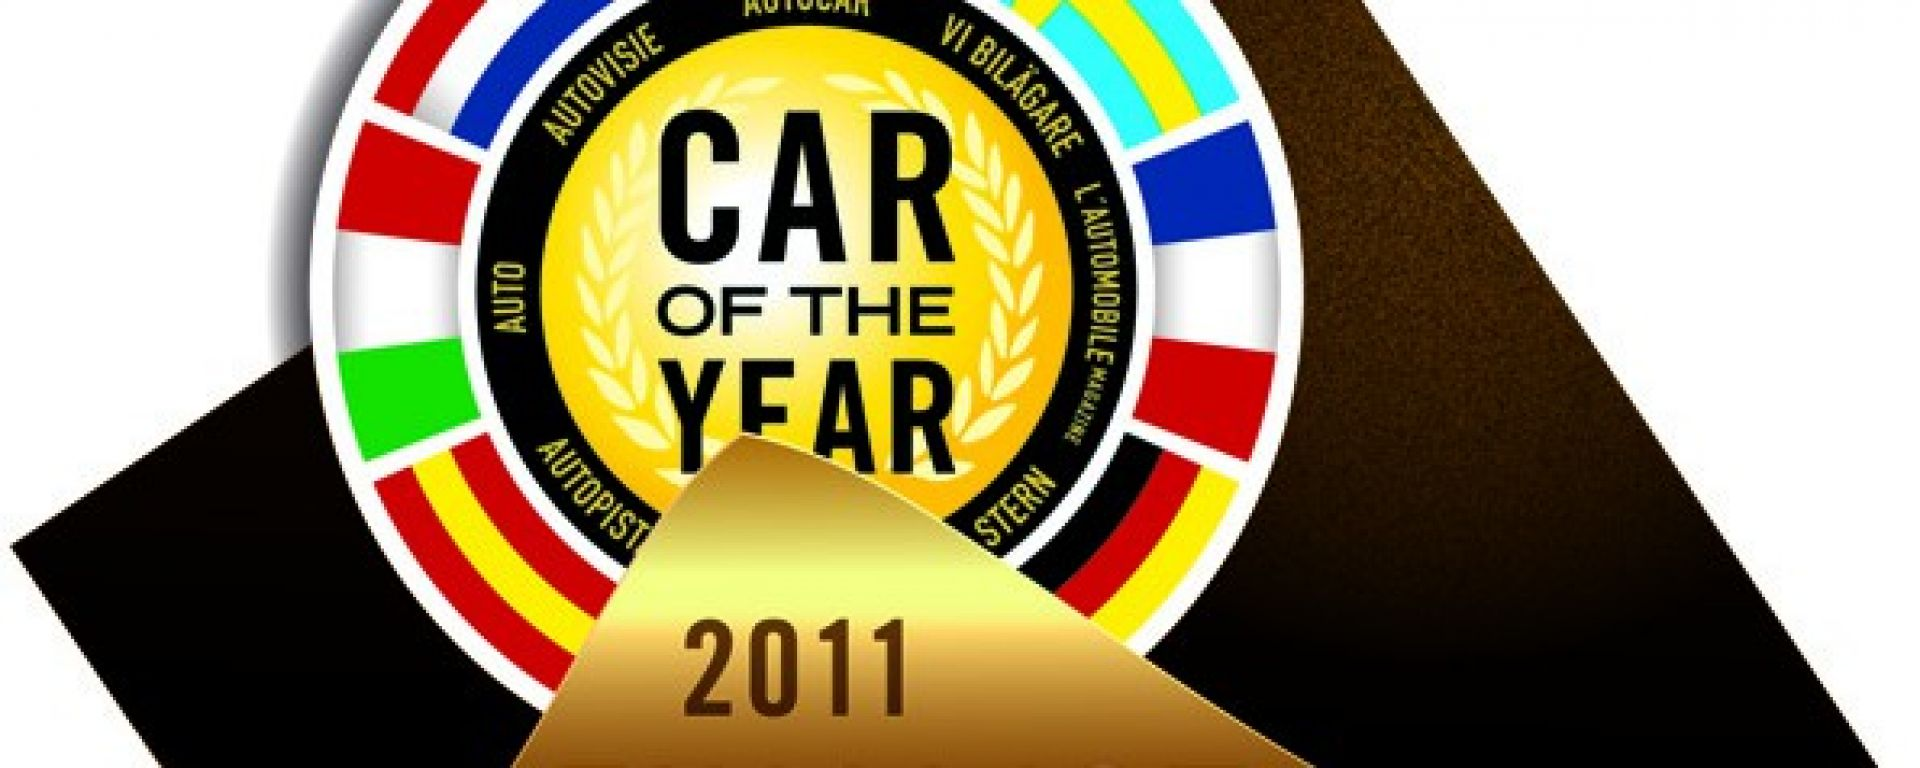 La Nissan Leaf è Car of the Year 2011: le preferenze